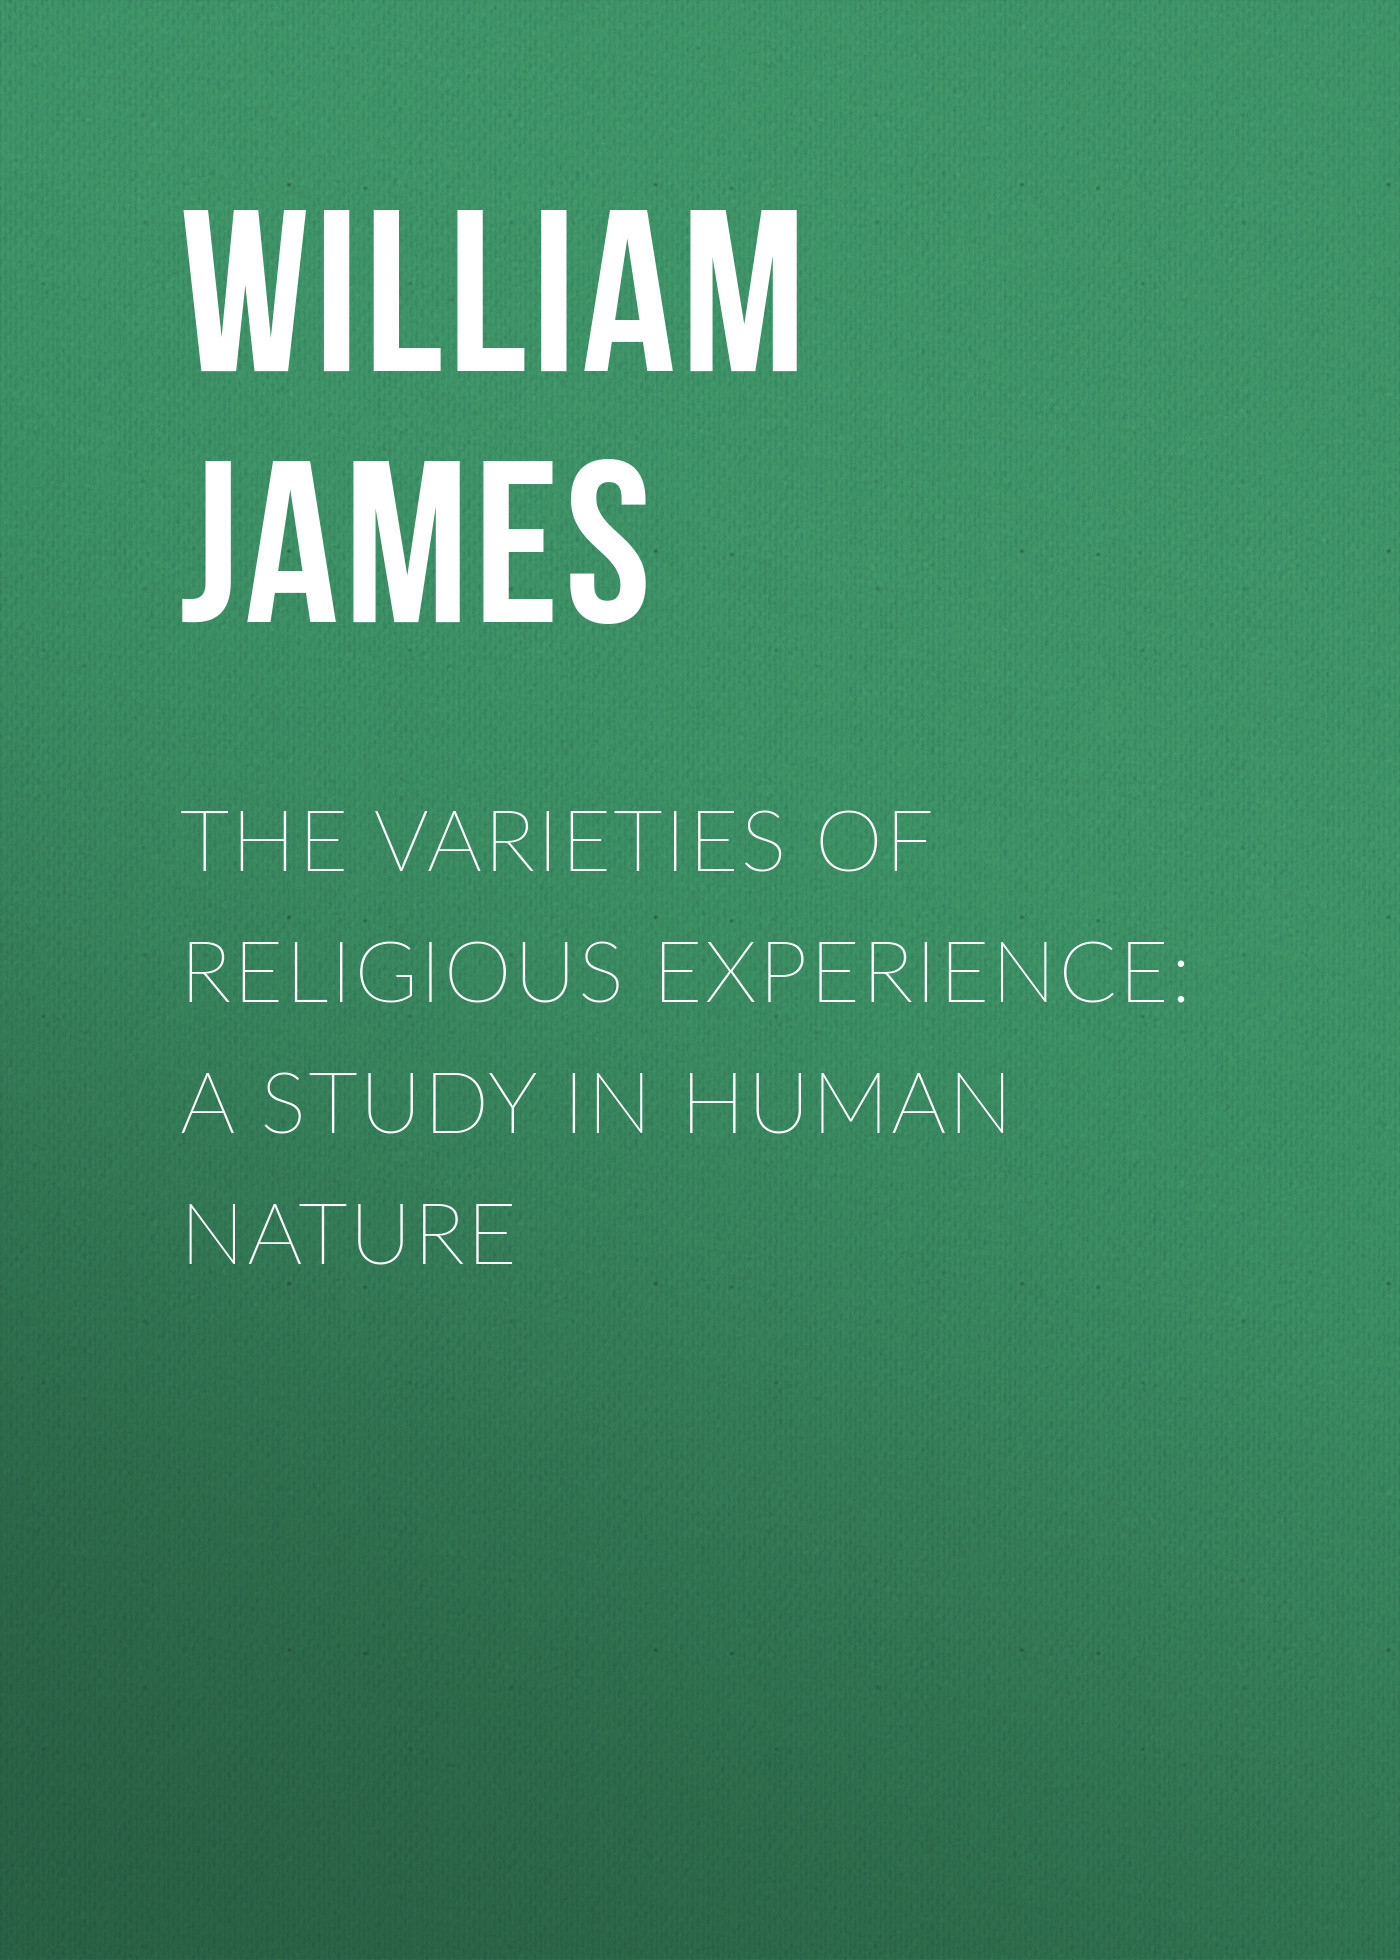 цены William James The Varieties of Religious Experience: A Study in Human Nature